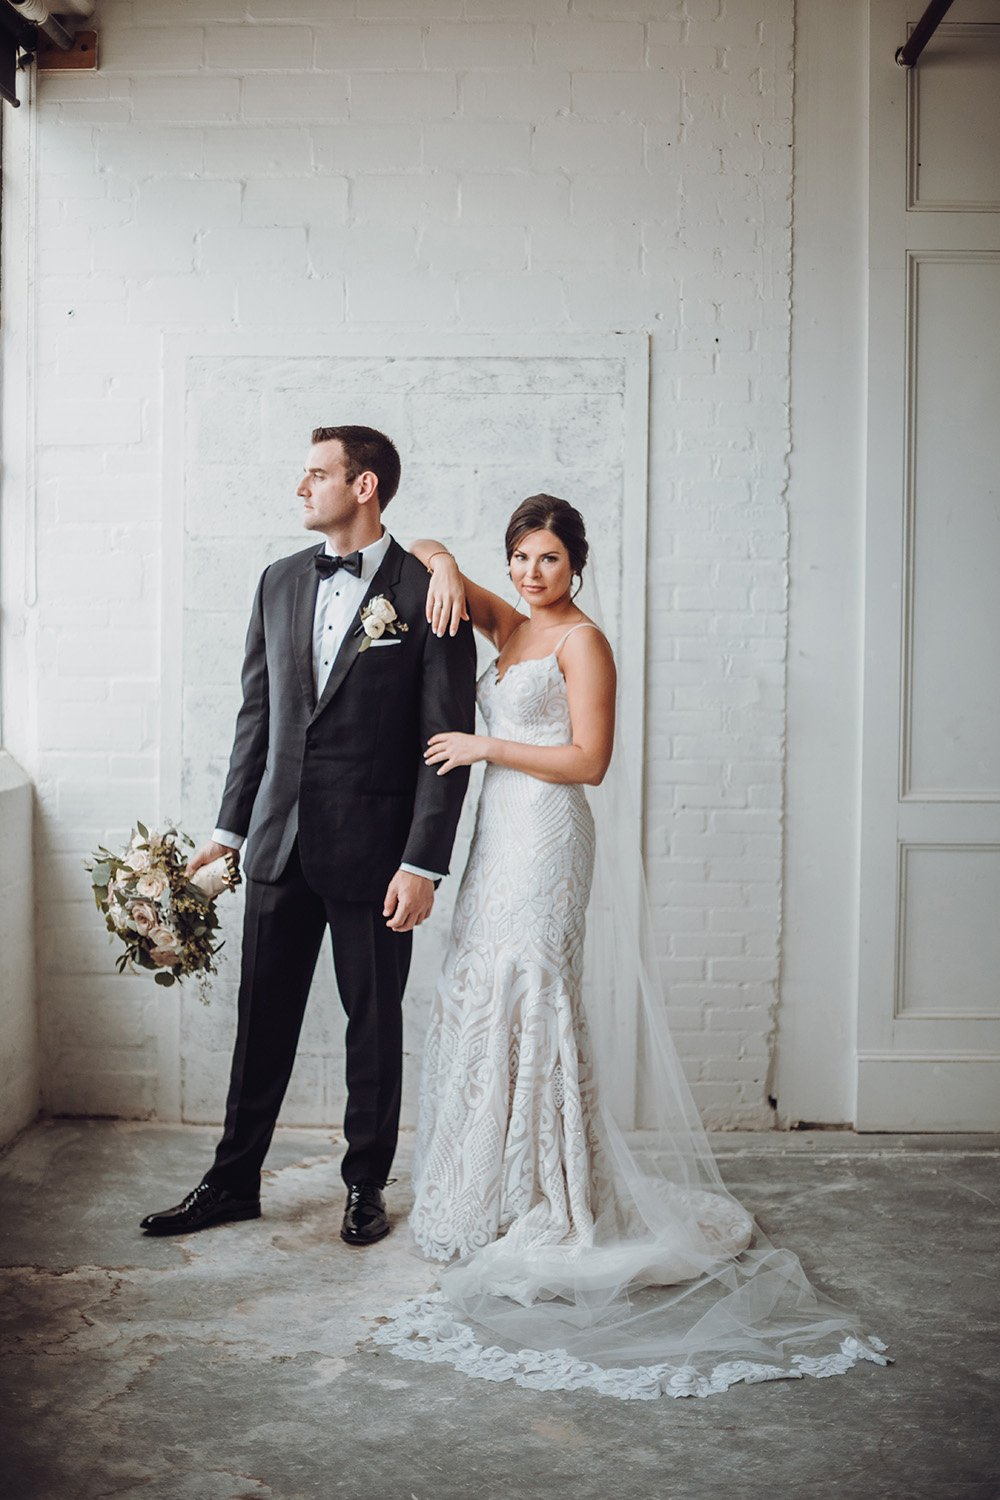 wedding photography of the couple, bouquet in hand